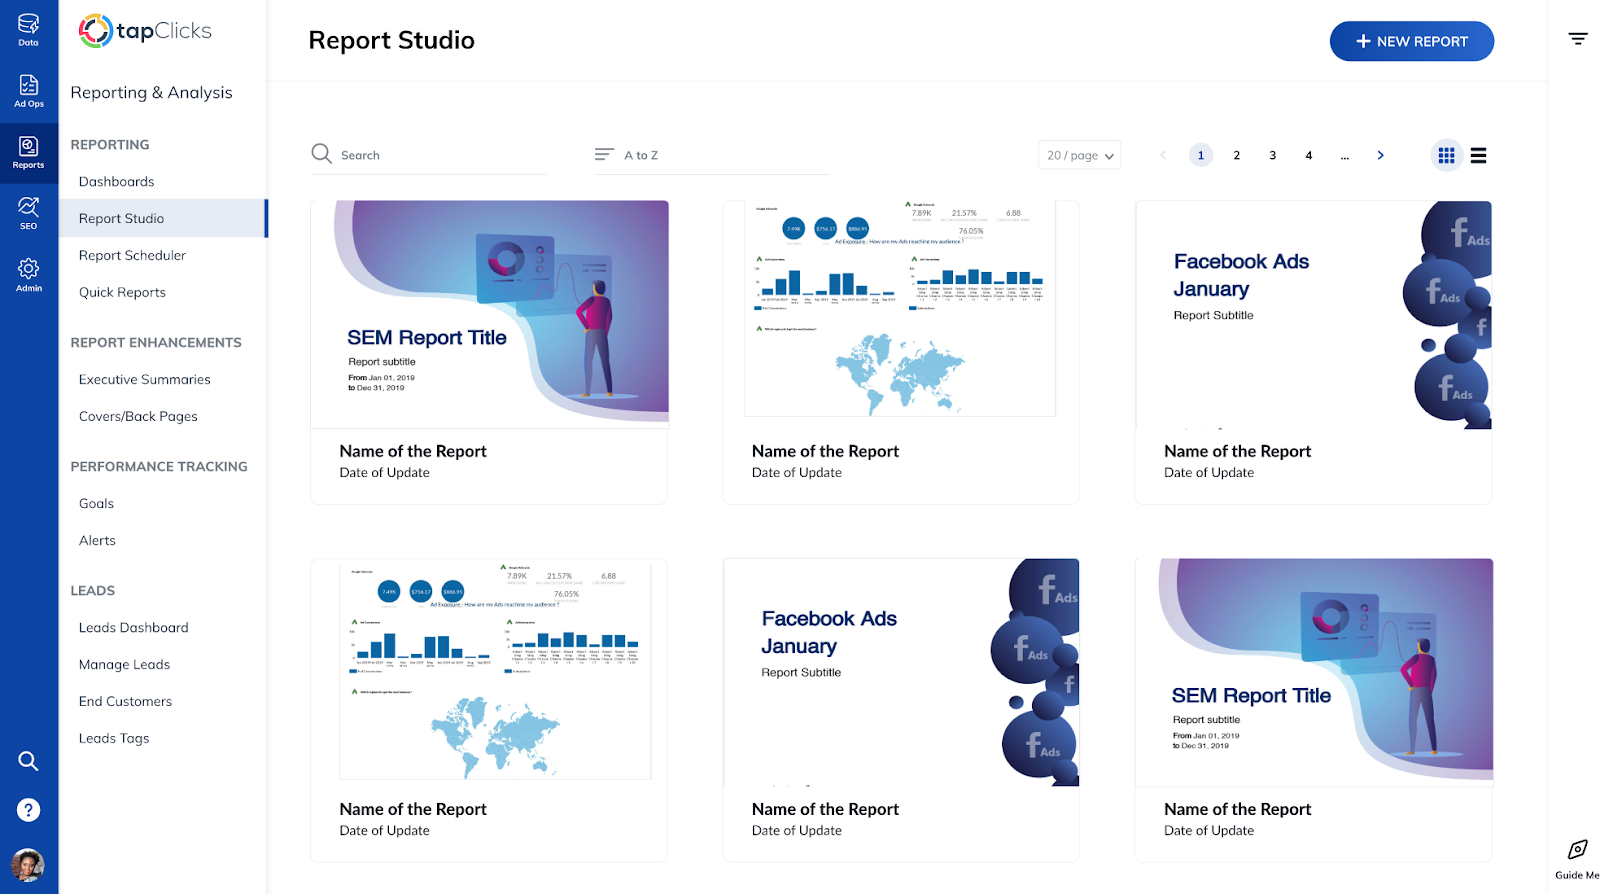 Report studio feature that pairs with TapClicks advertising dashboards